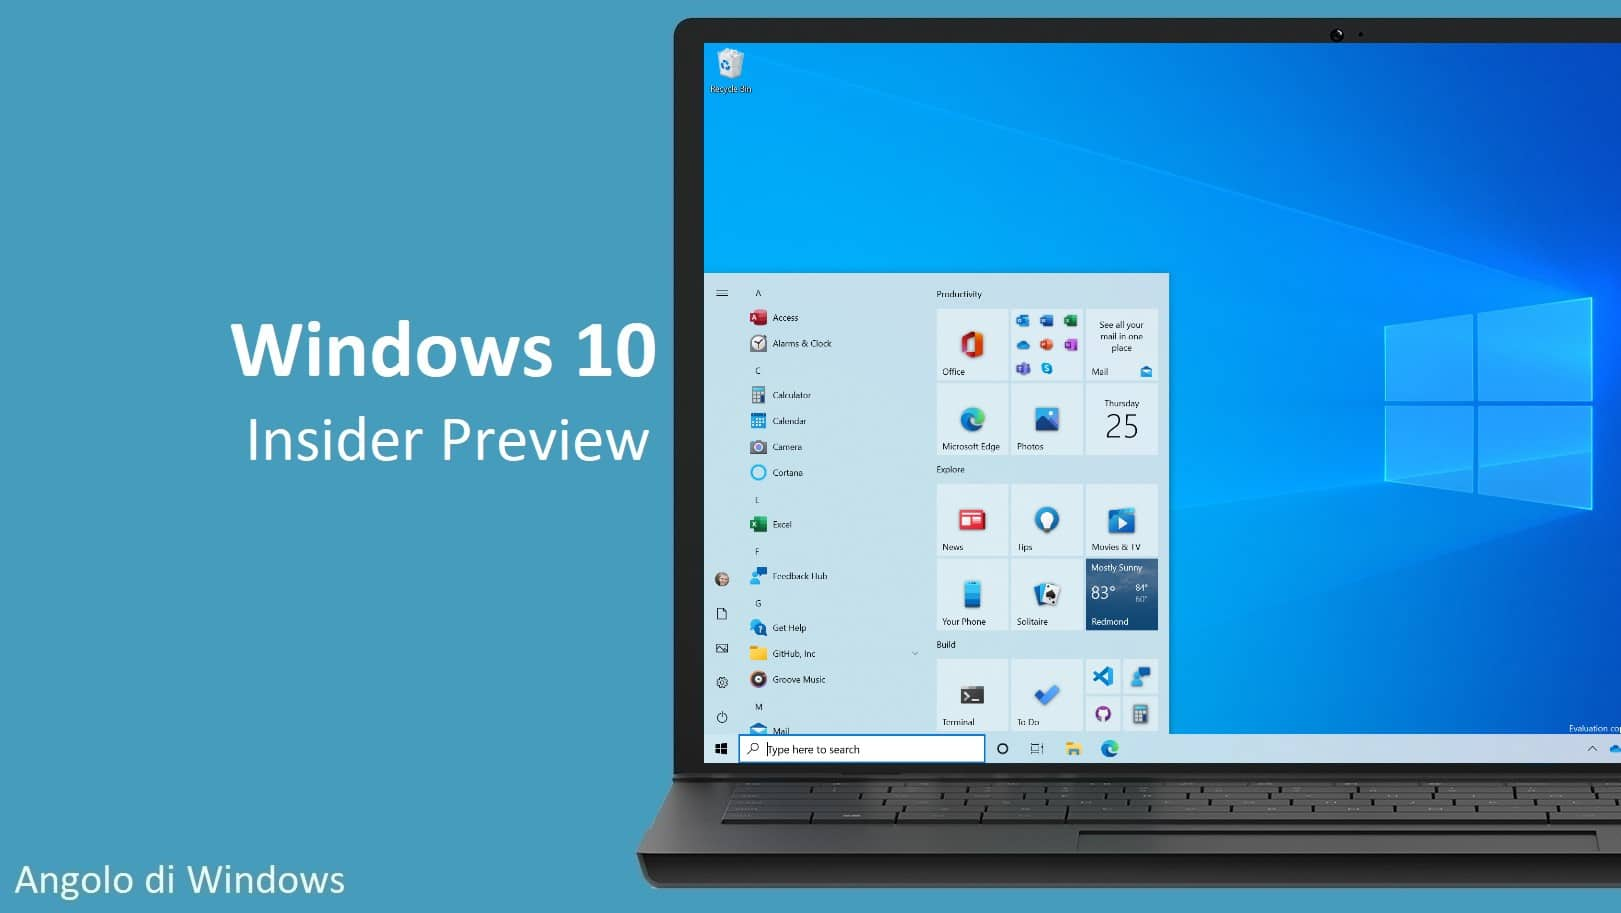 Le ultime novità di Windows 10 Insider Preview build 20170